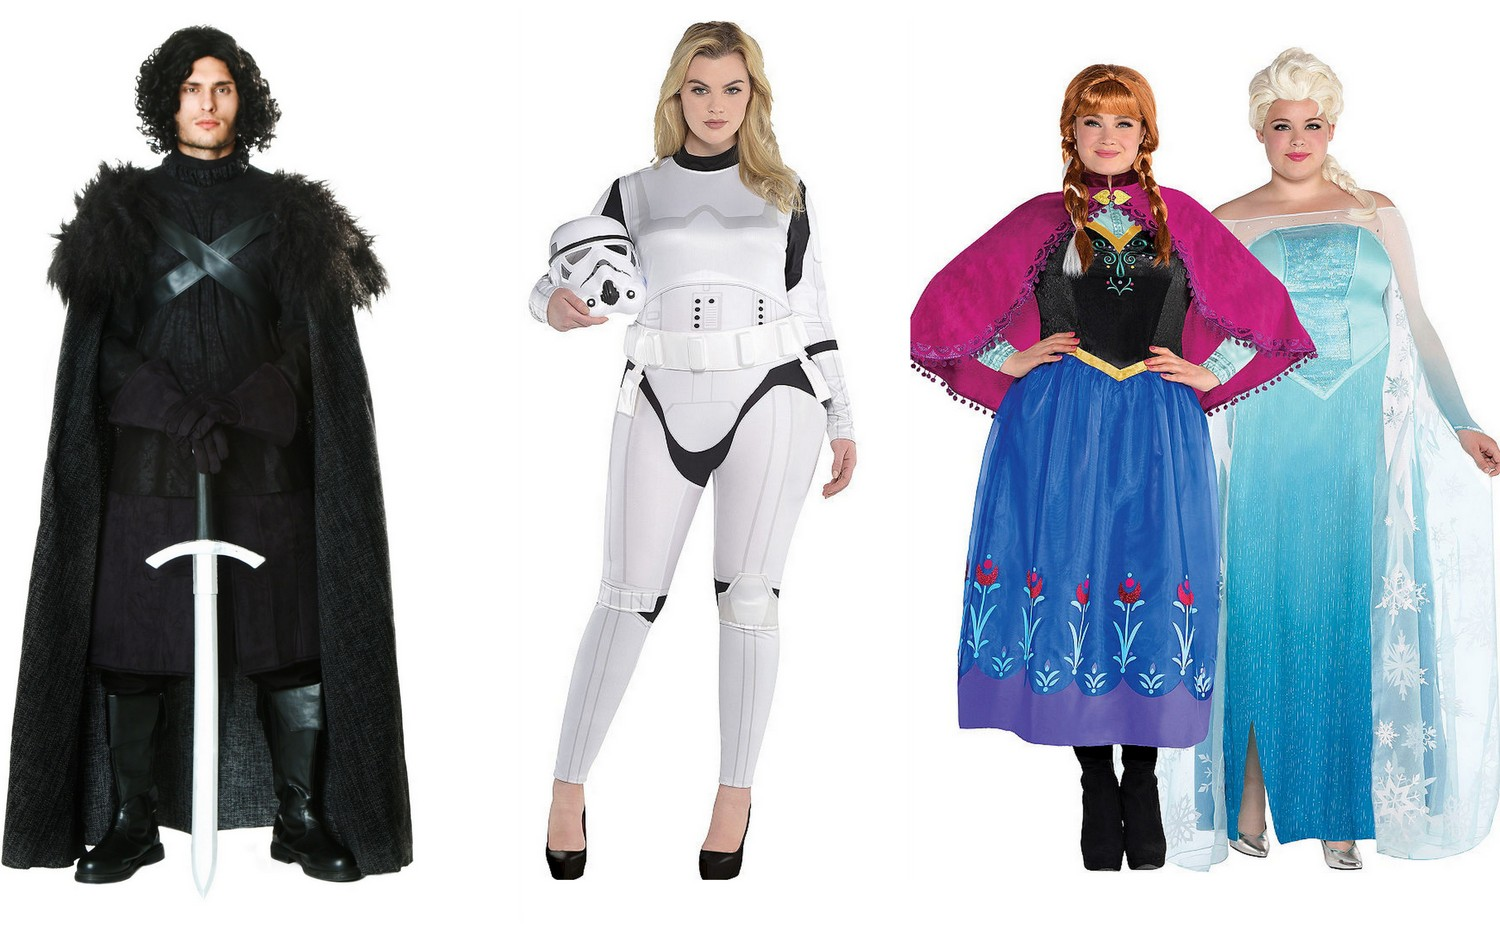 Halloween Costumes Ideas For Women.21 Fun Big Tall And Plus Size Halloween Costume Ideas